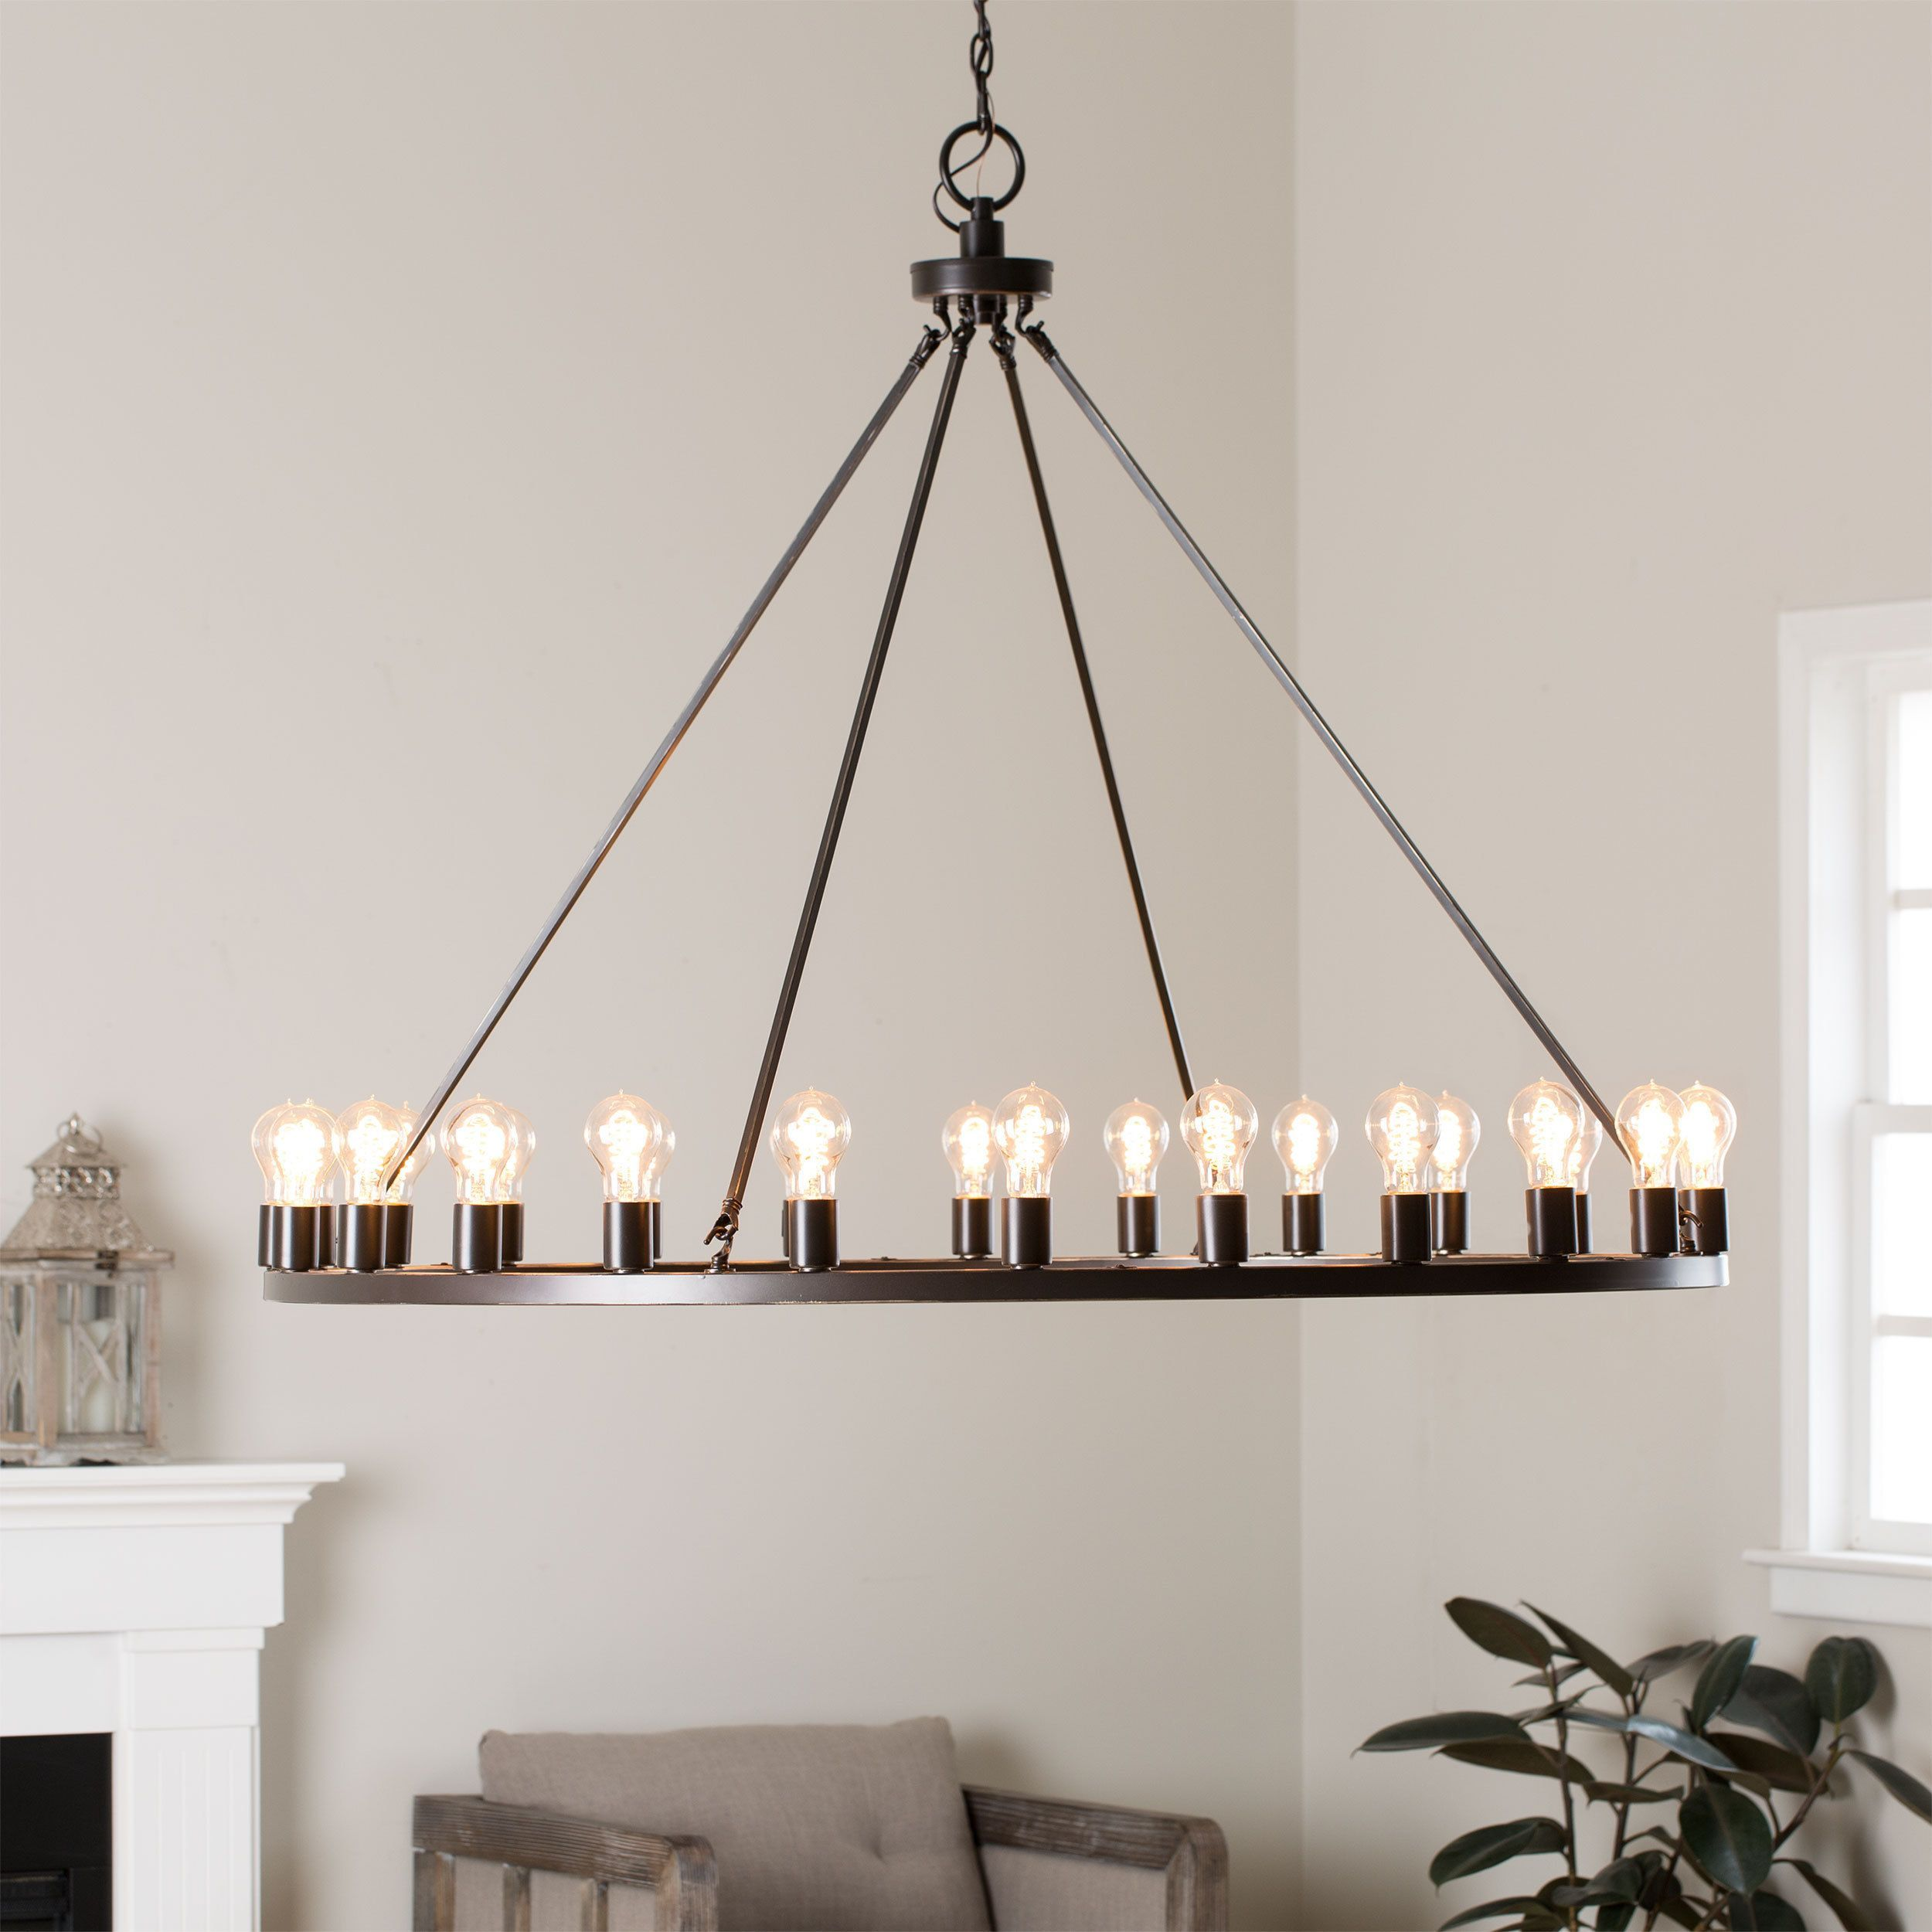 Overstock Lighting: I Found This Copycat On Overstock. (comparing It To The RH